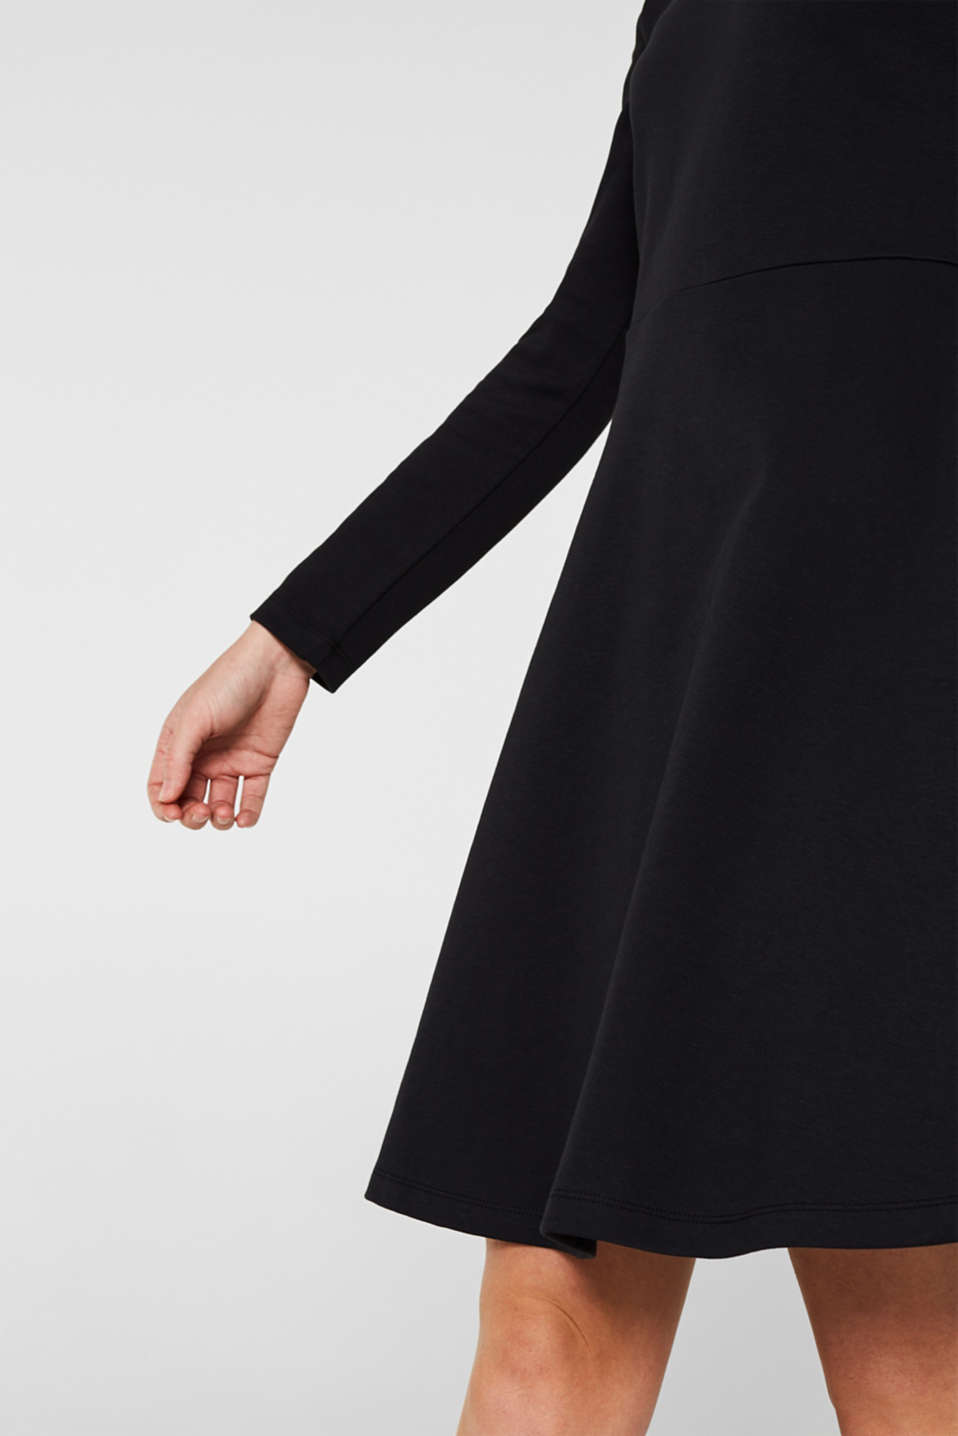 Textured stretch jersey dress, BLACK, detail image number 3